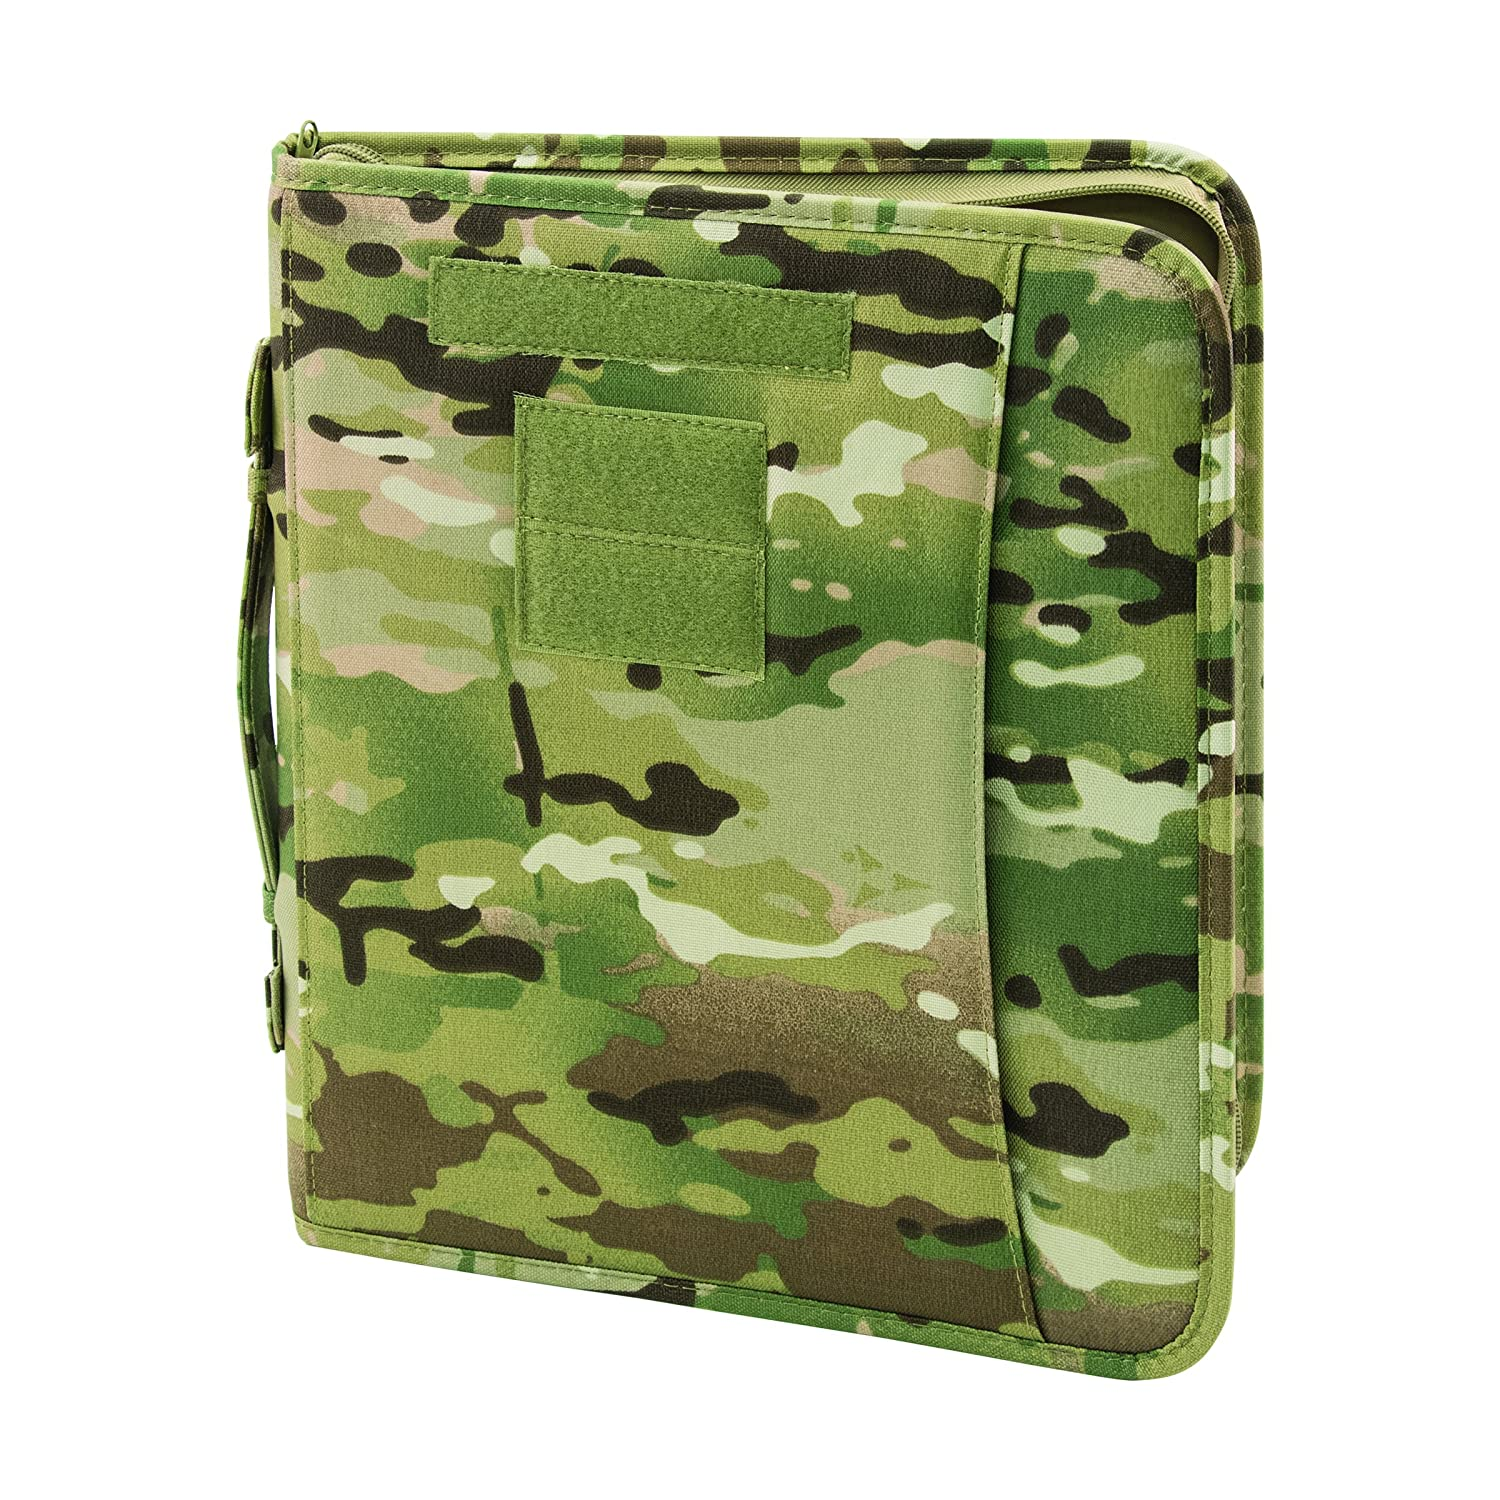 Field ready multicam ocp zippered ring binder and padfolio sports outdoors  jpg 1500x1500 Ocp camo golf 5ba99fea9cfb5